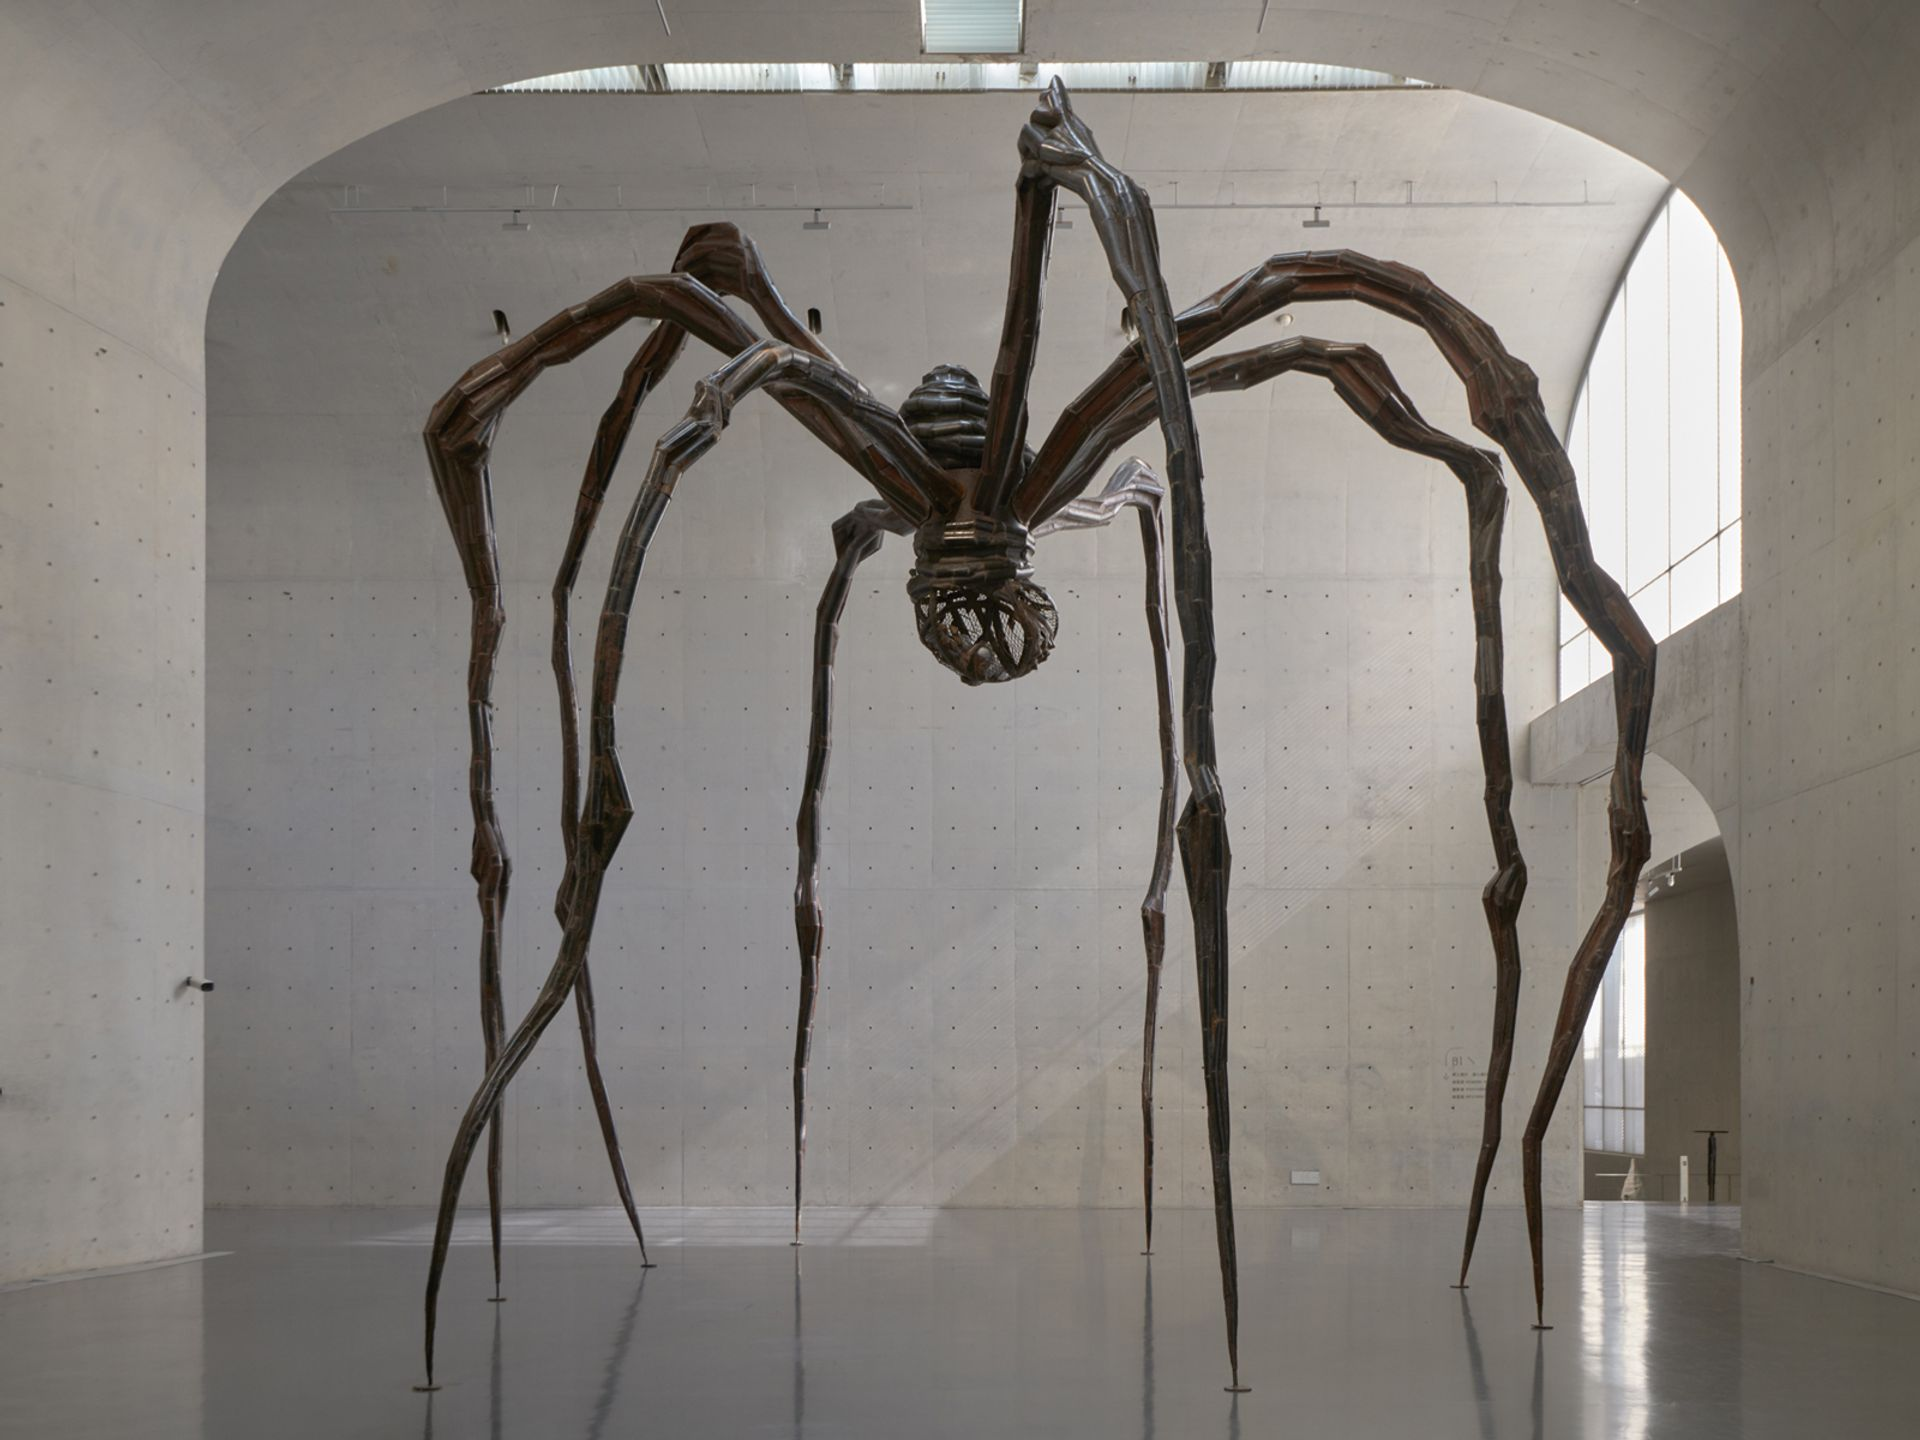 Louise Bourgeois's Maman (1999) is on show at the Long Museum © The Easton Foundation/VAGA (ARS), NY. Photo: Jiaxi  &  zhe. Long  Museum (West  Bund), 2018